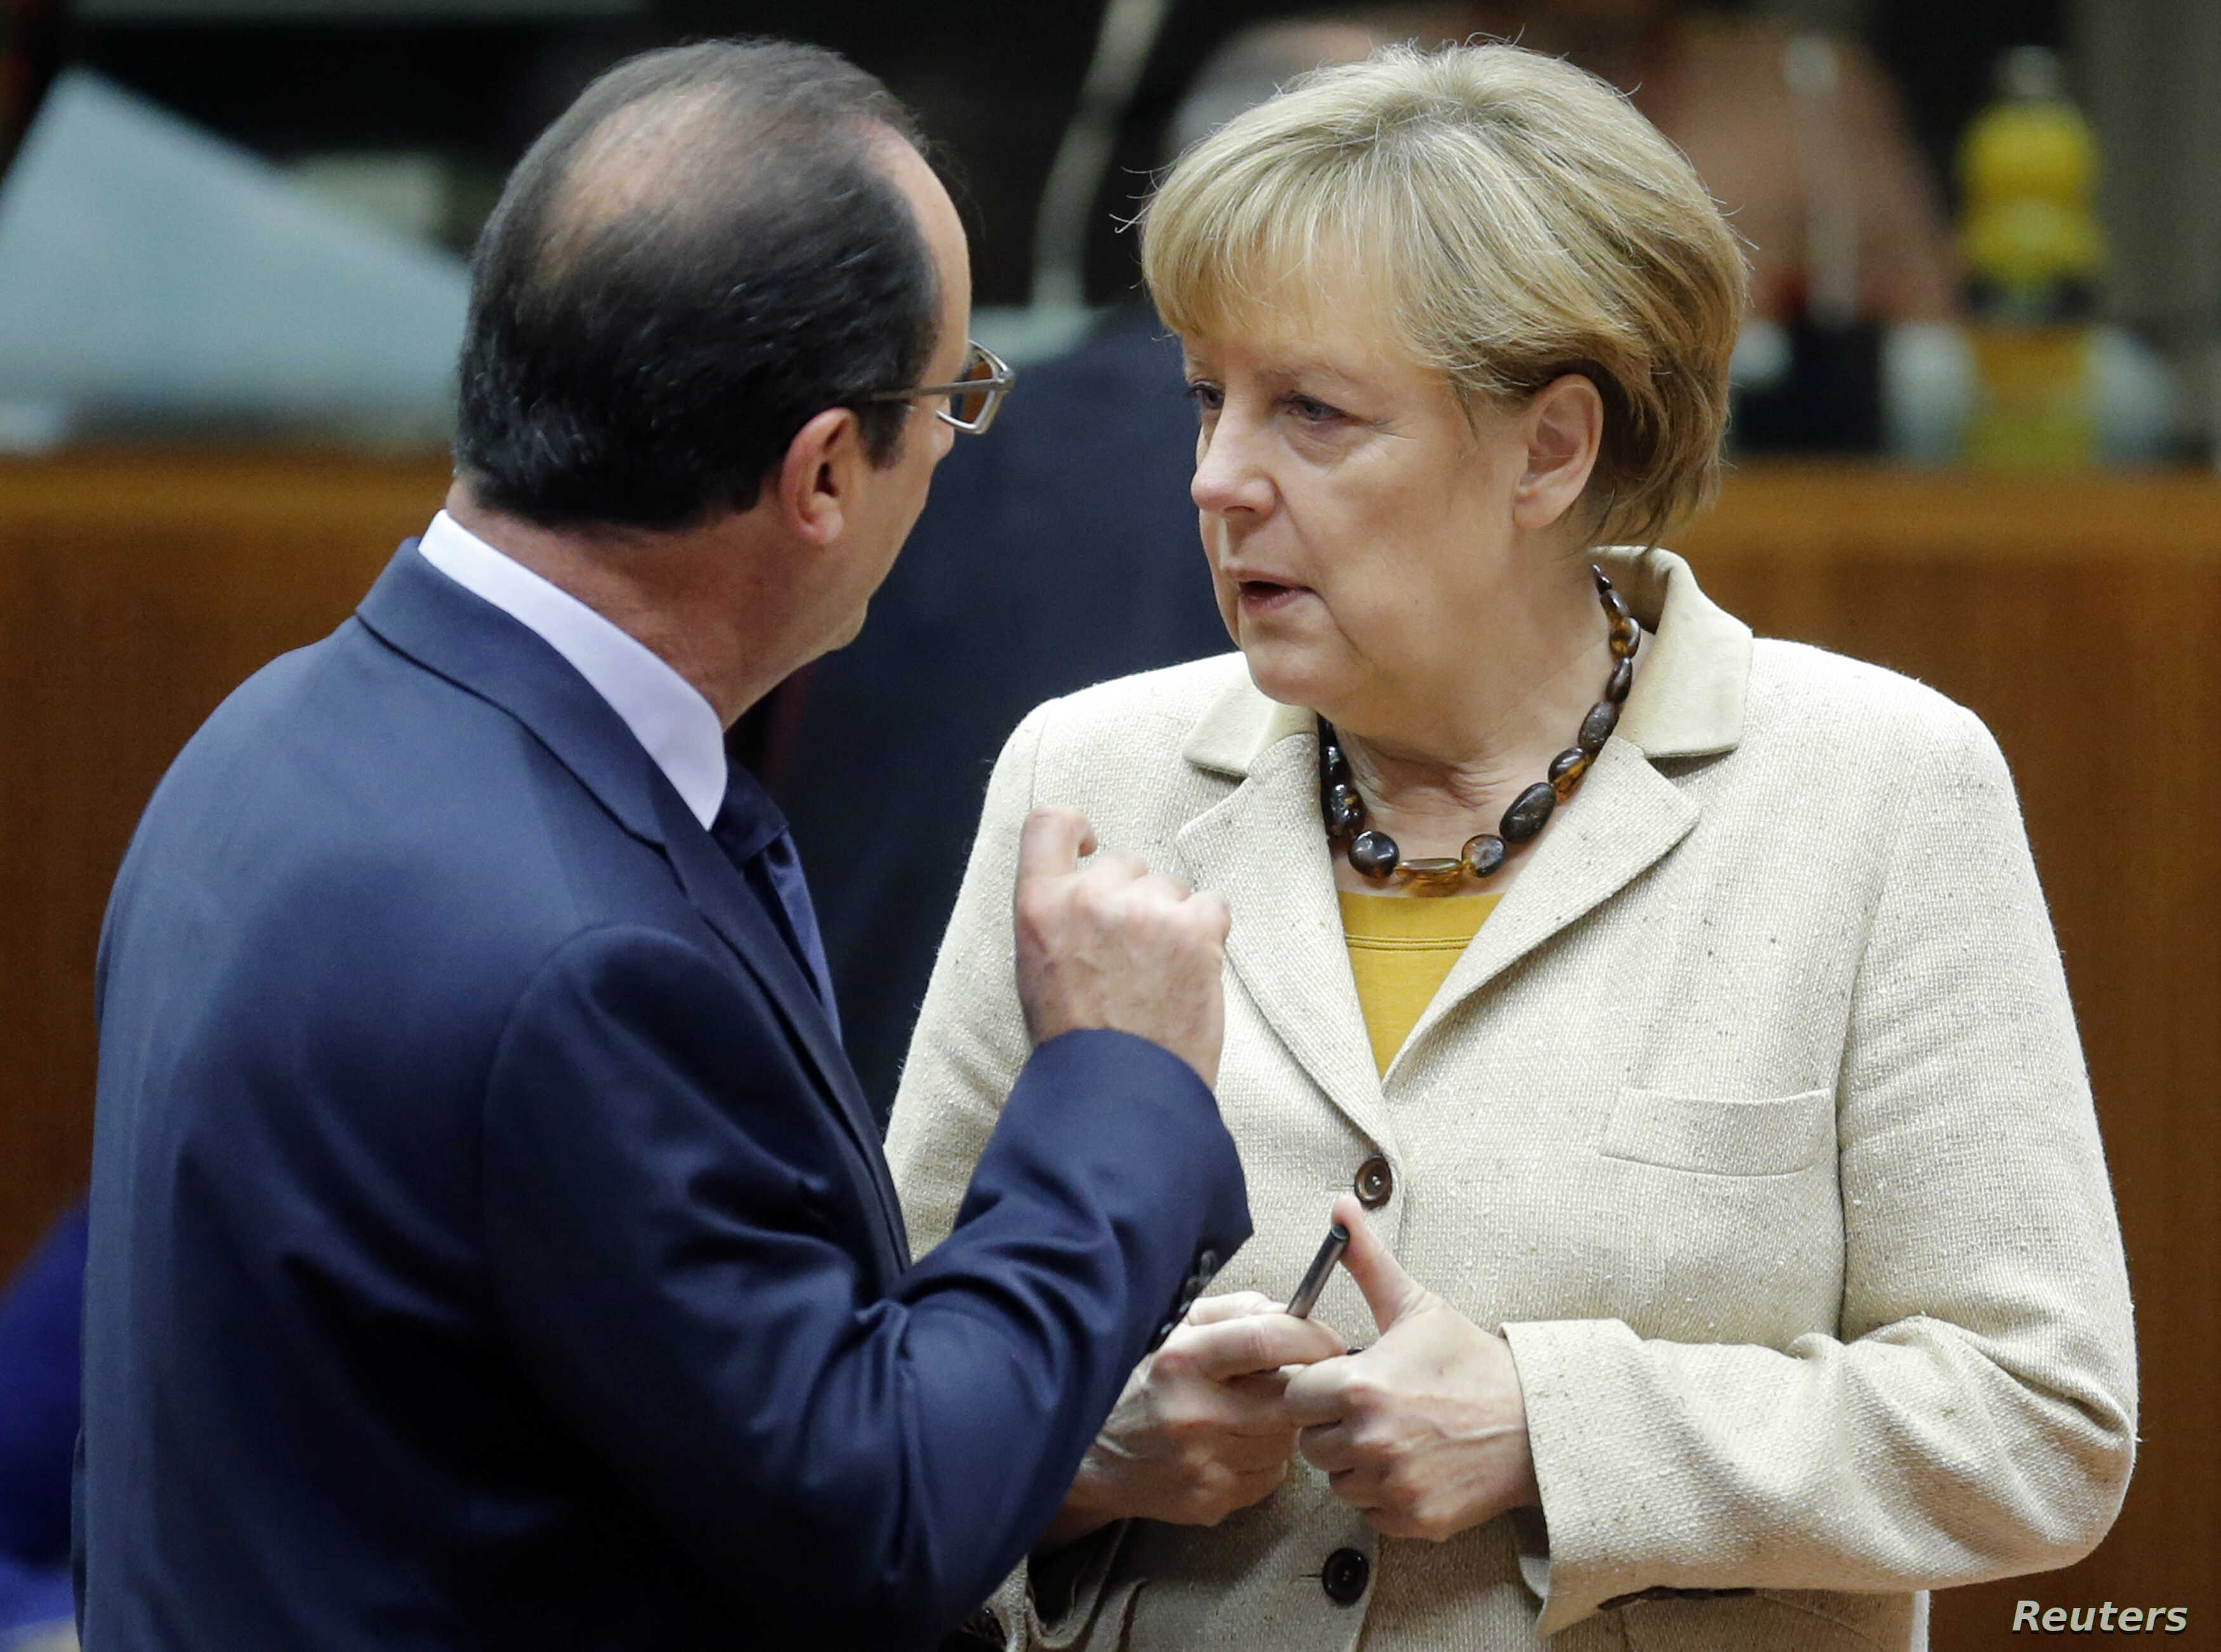 Germany's Chancellor Angela Merkel (R) and France's President Francois Hollande arrive for a working session during an EU summit in Brussels, Oct. 24, 2014.